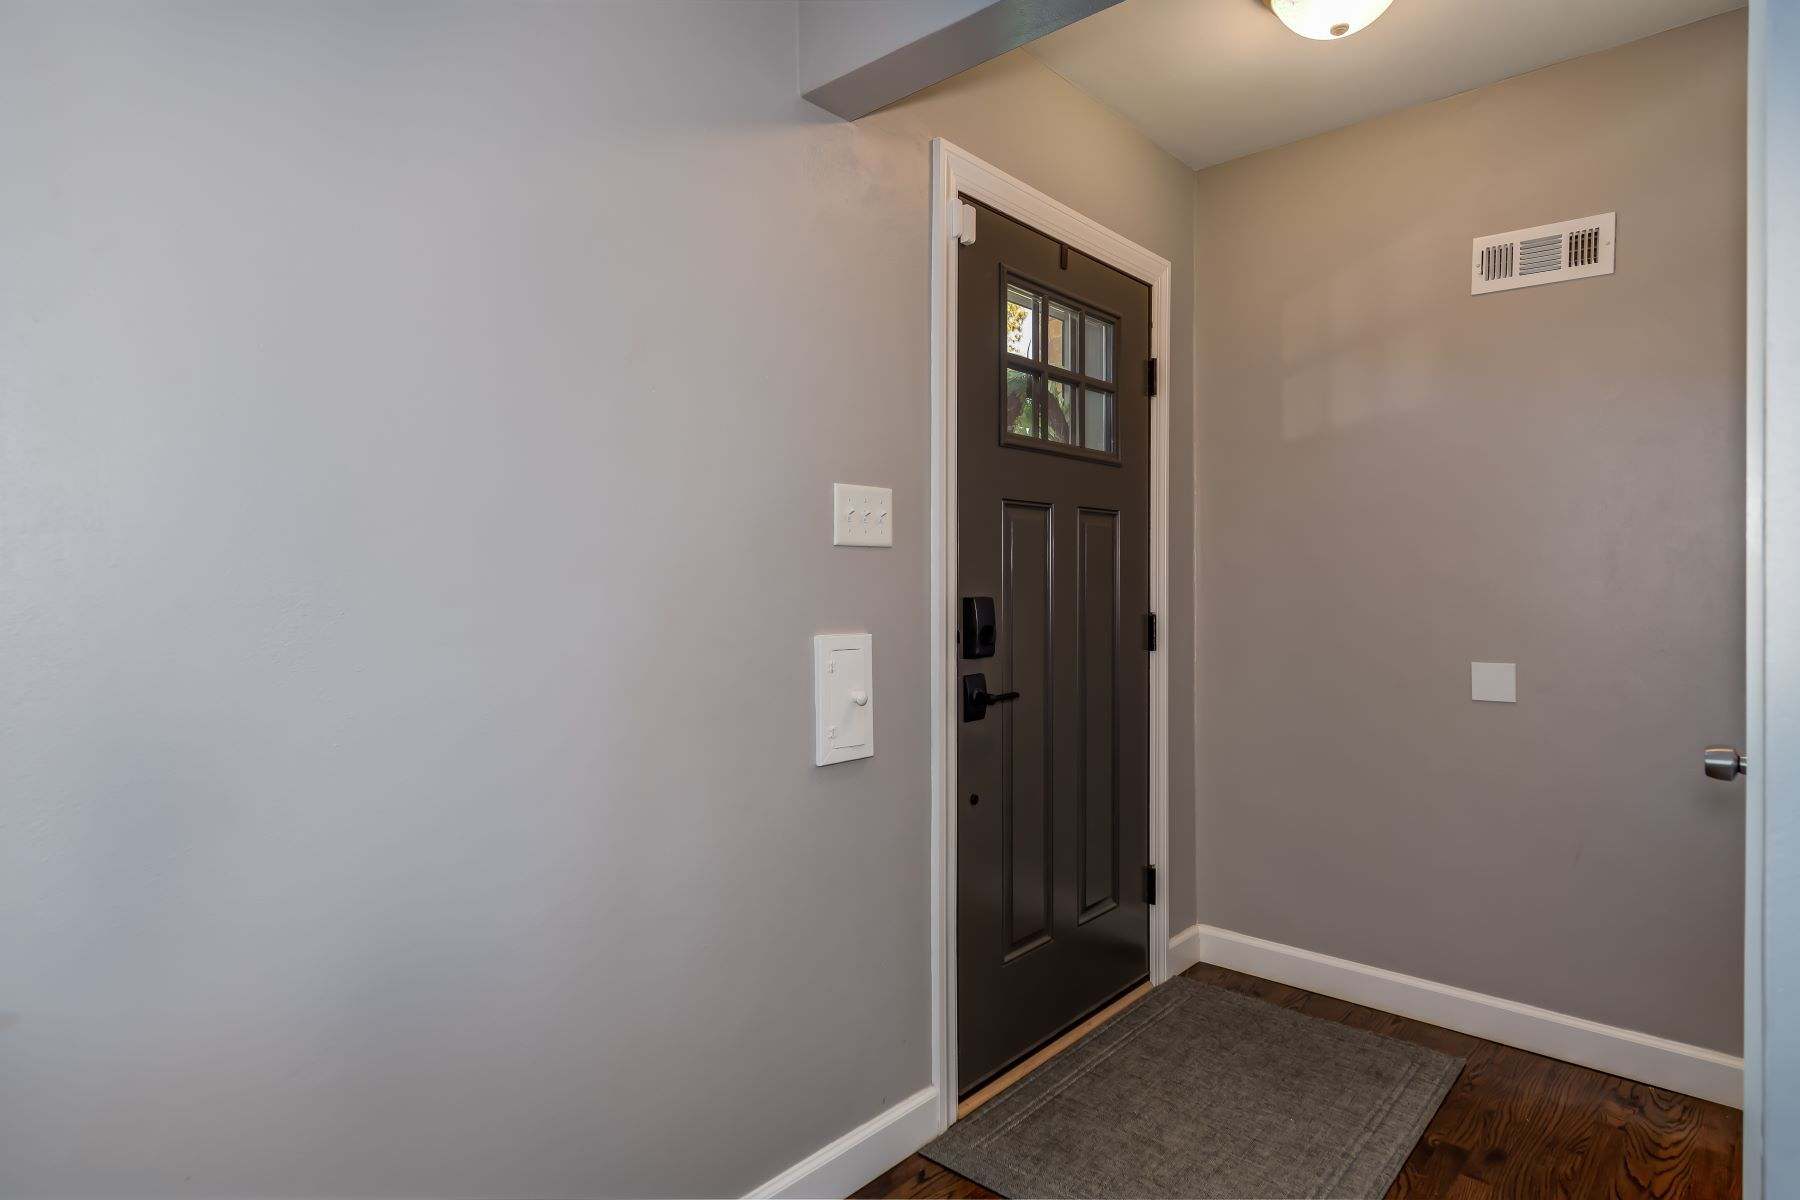 Additional photo for property listing at Fully Renovated Bungalow in Southampton Neighborhood 5226 Walsh Street St. Louis, Missouri 63109 United States